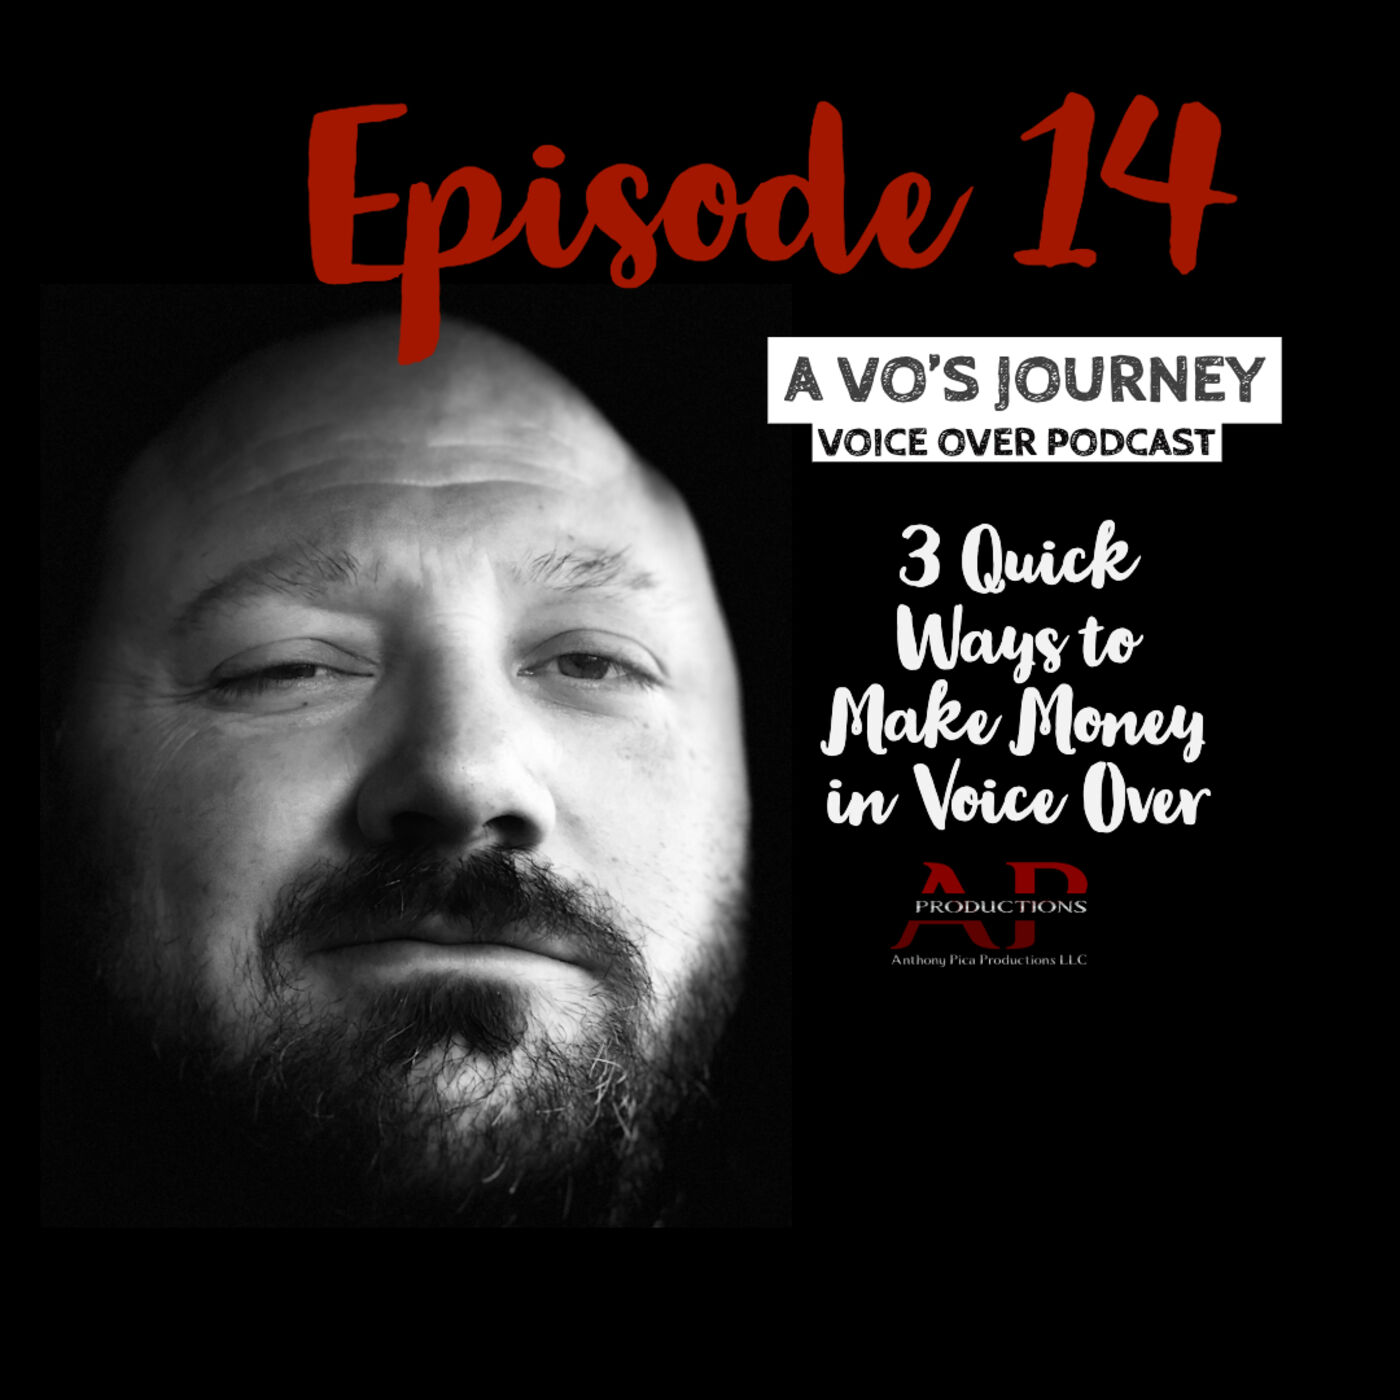 Ep. 14: 3 Quick Ways to Make Money in Voice Over